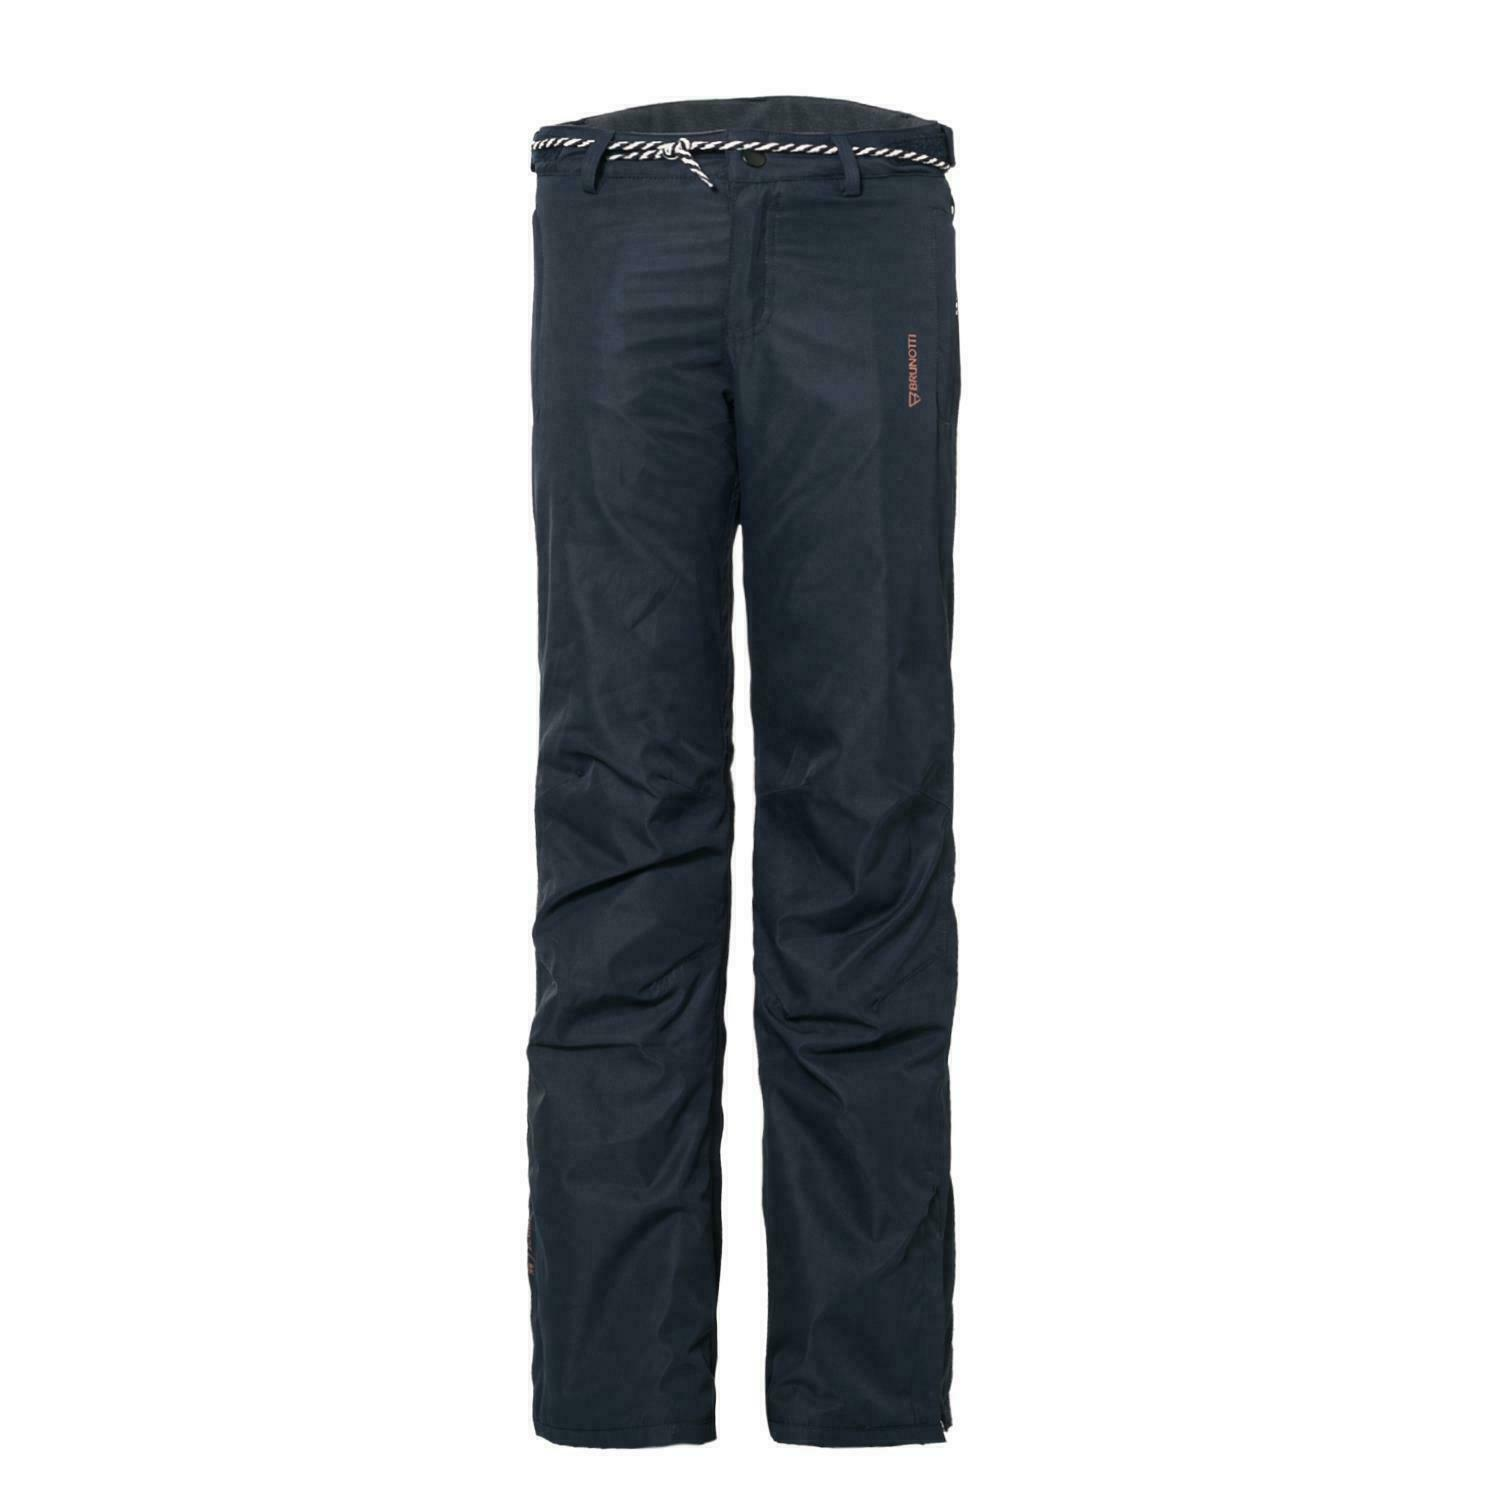 Brunotti Ski Snowboard Salopettes  Trousers Sunleaf Woman's Dark bluee - NEW  fast delivery and free shipping on all orders